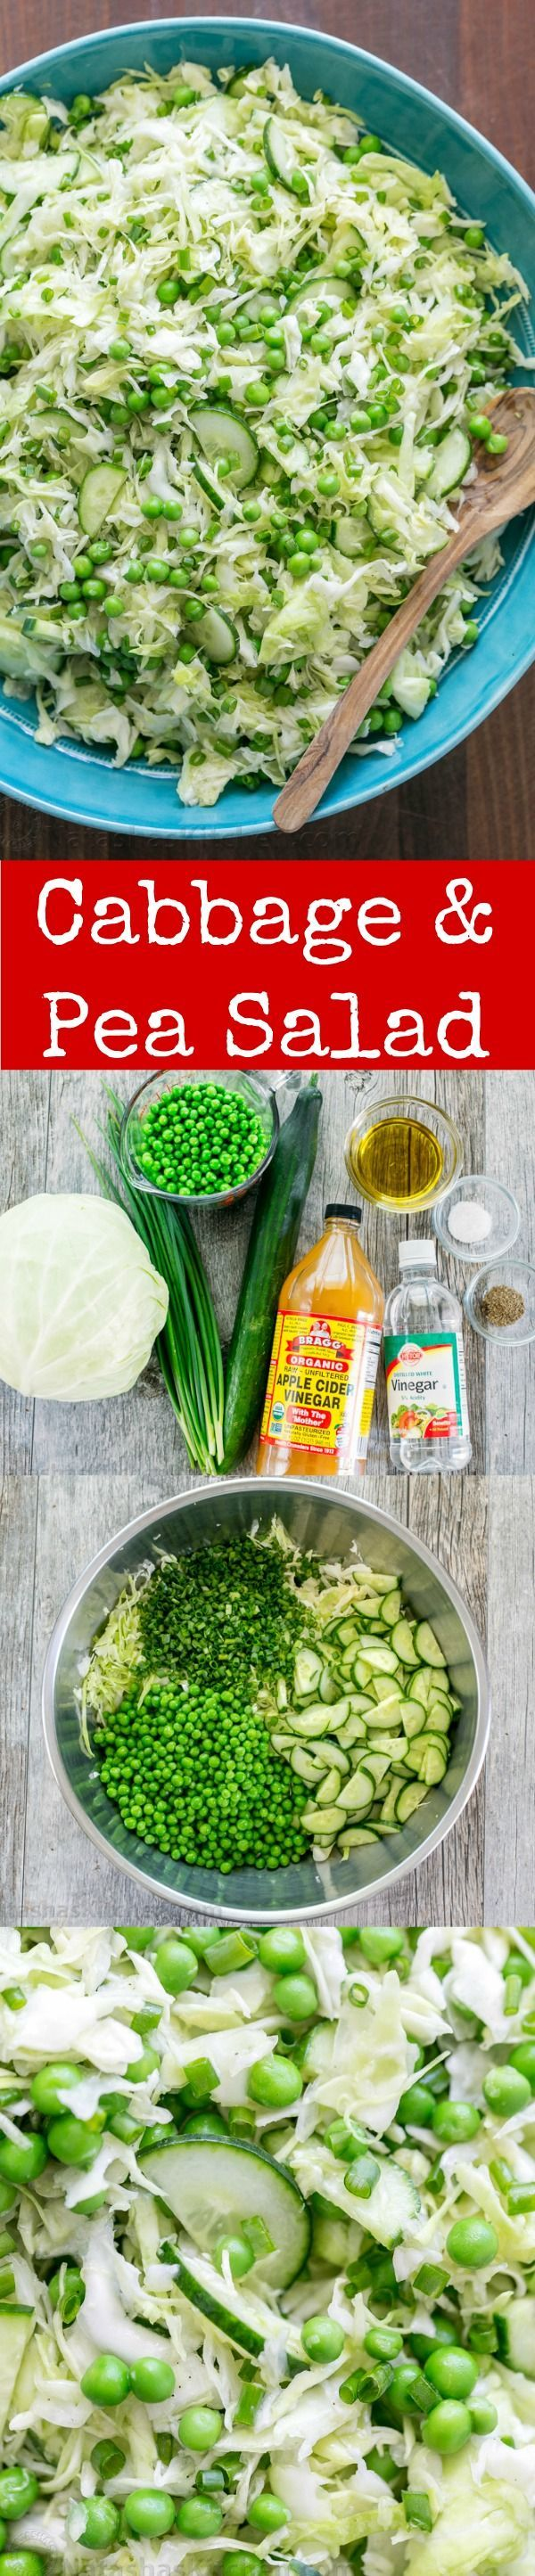 This cabbage and pea salad is vibrant, crisp and fresh. I love the sweet pop of flavor from the peas and the easy zesty dressing. A must try cabbage salad! | http://natashaskitchen.com